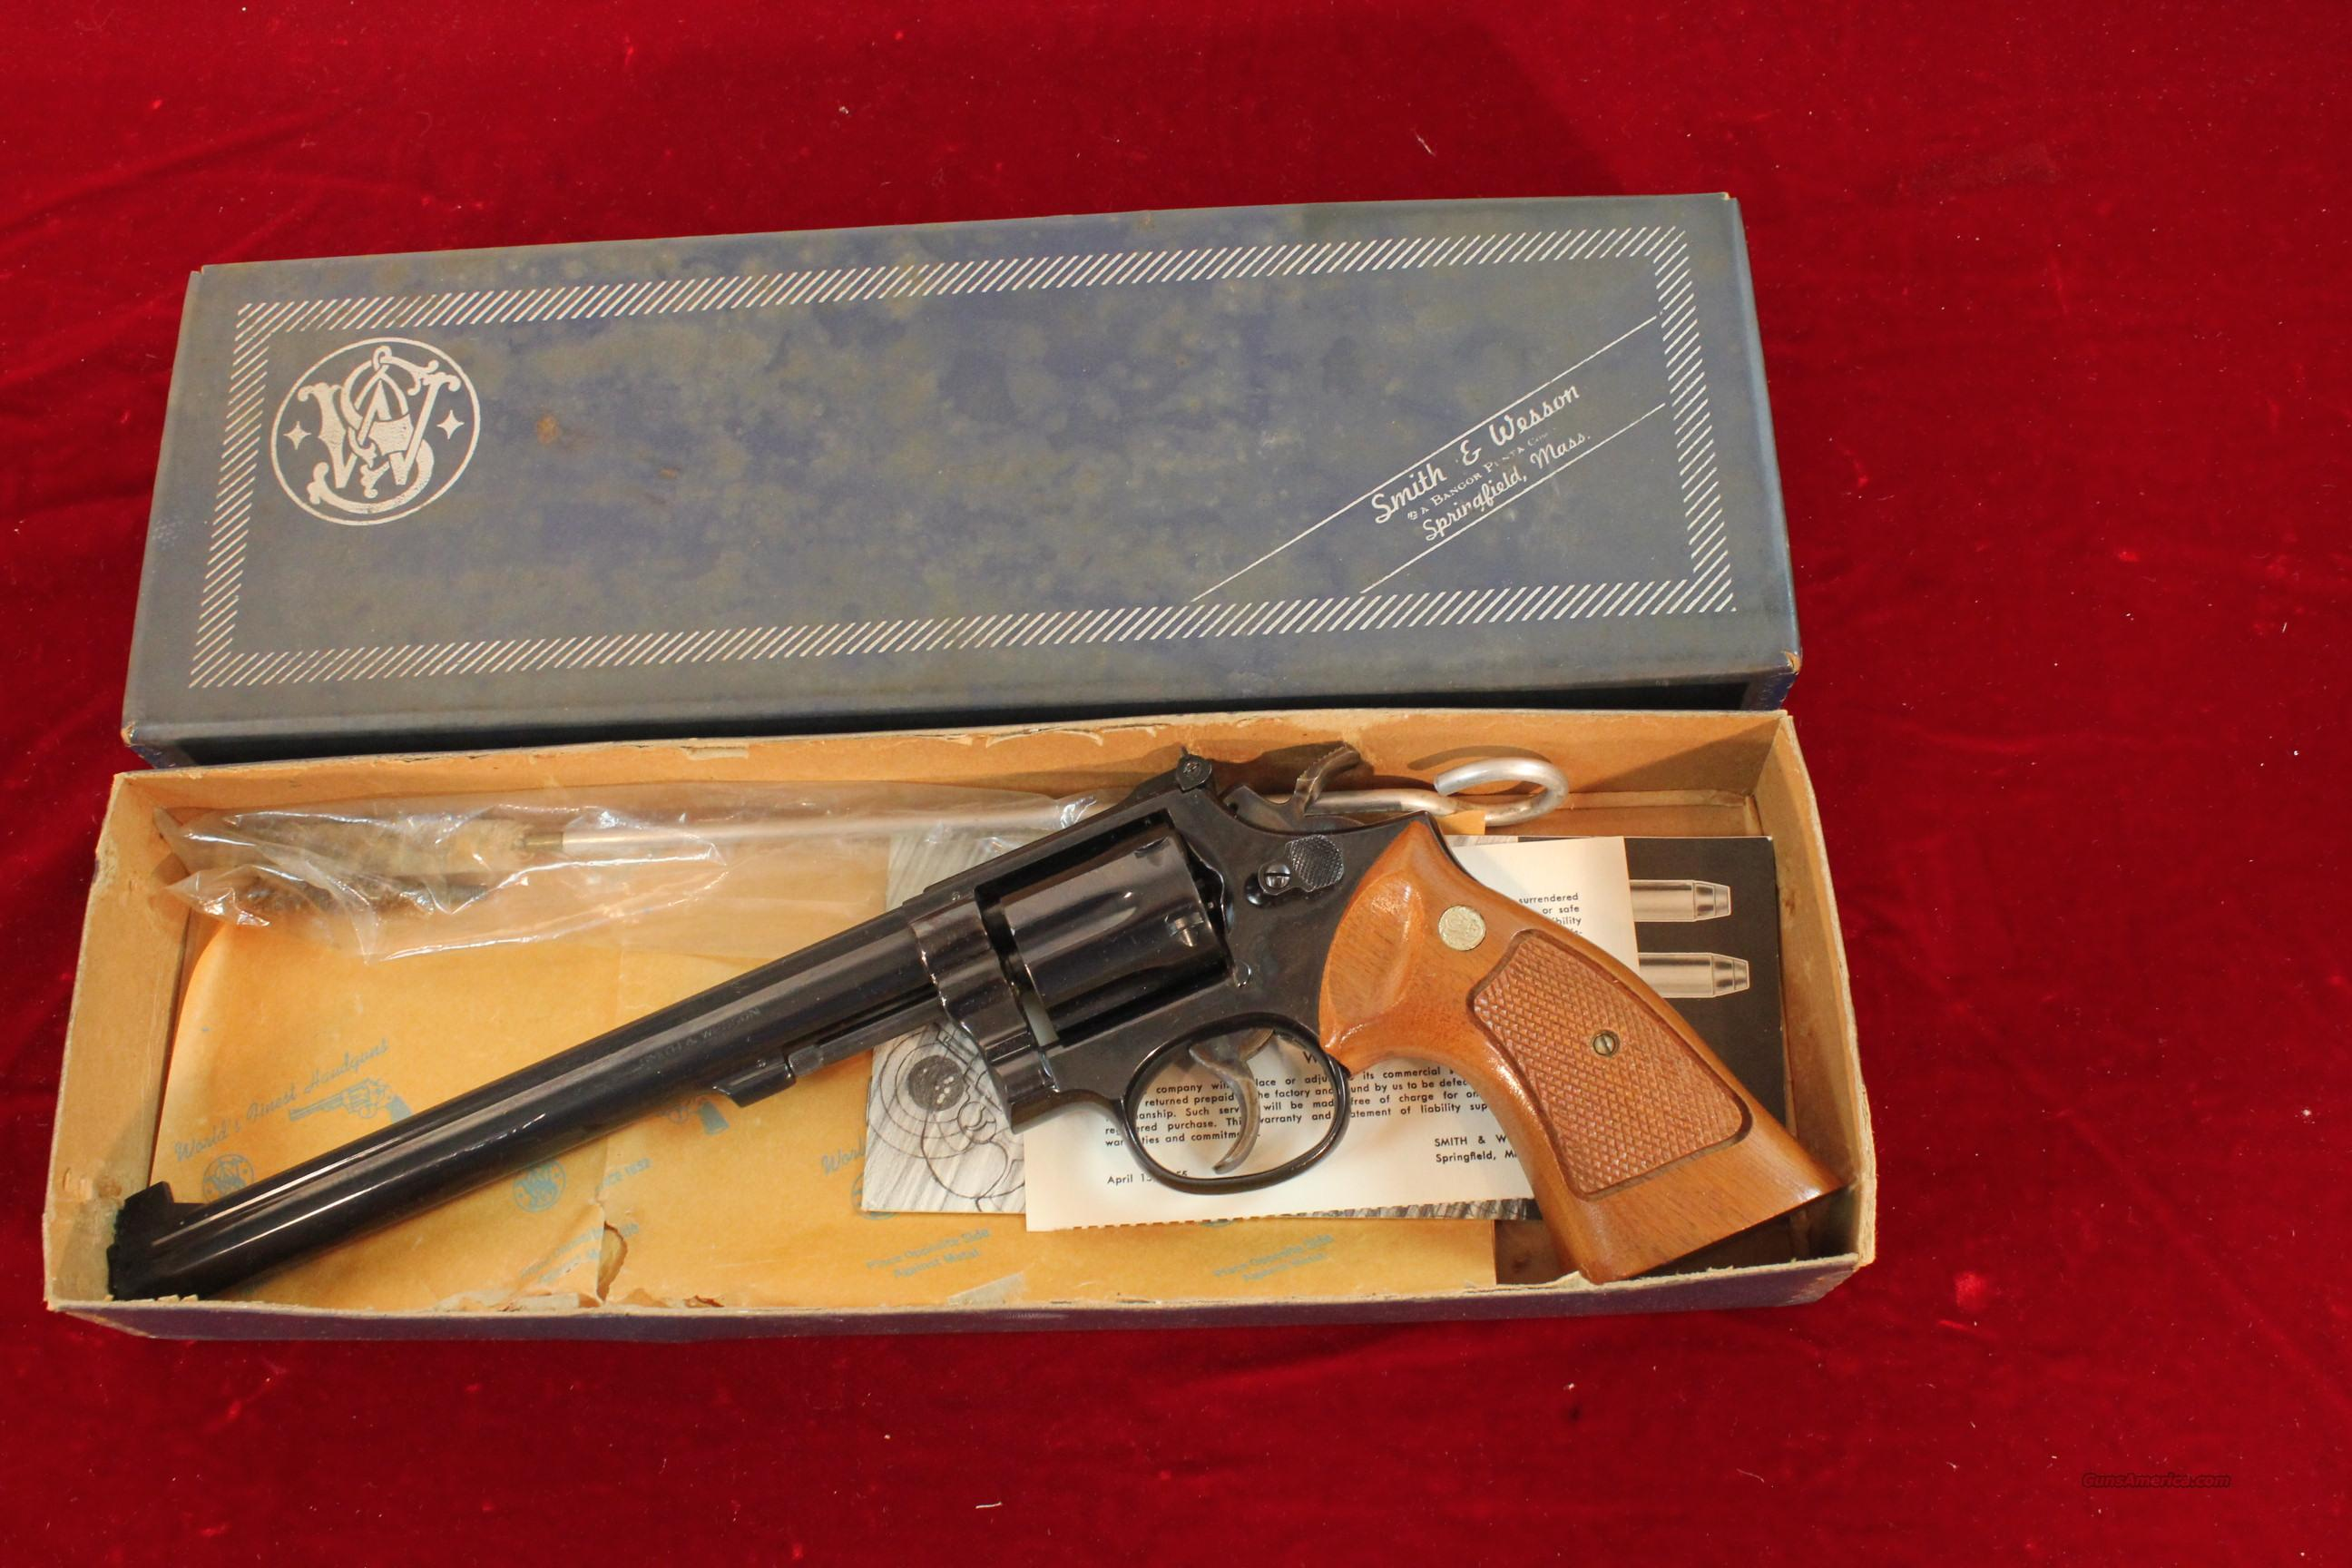 "Smith & Wesson Model 14-3, .38 Special, 8-3/8"" boxed  Guns > Pistols > Smith & Wesson Revolvers > Full Frame Revolver"